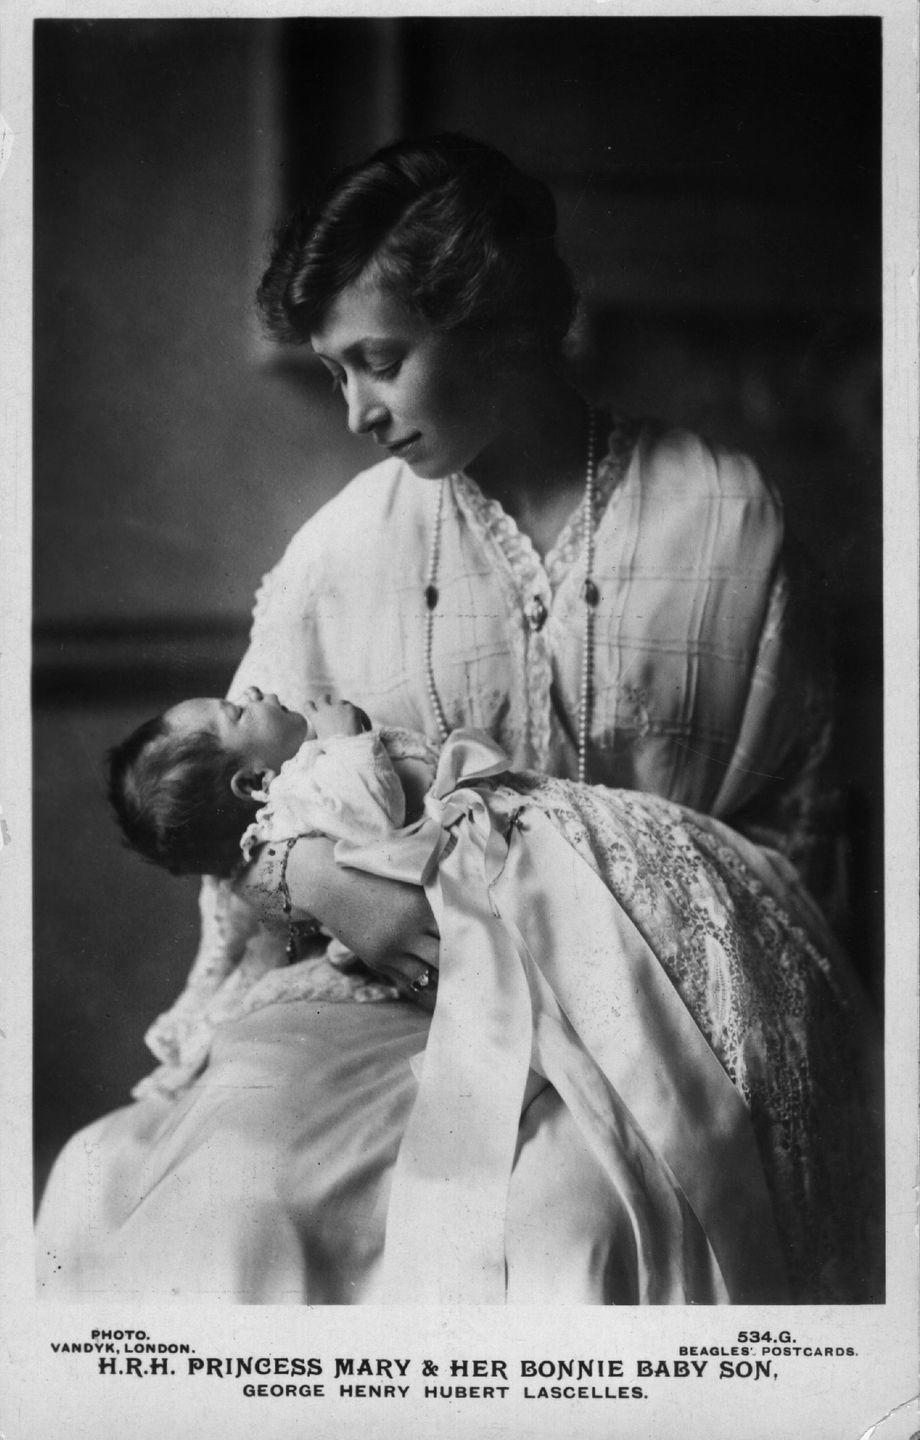 """<p>By the 1920's, maternity wear had softened. Fashionable drop waist silhouettes had a looser fit that made expecting mothers feel <a href=""""https://www.elle.com/fashion/personal-style/g28423/maternity-style-evolution/?slide=24"""" rel=""""nofollow noopener"""" target=""""_blank"""" data-ylk=""""slk:much more comfortable"""" class=""""link rapid-noclick-resp"""">much more comfortable</a>. </p>"""